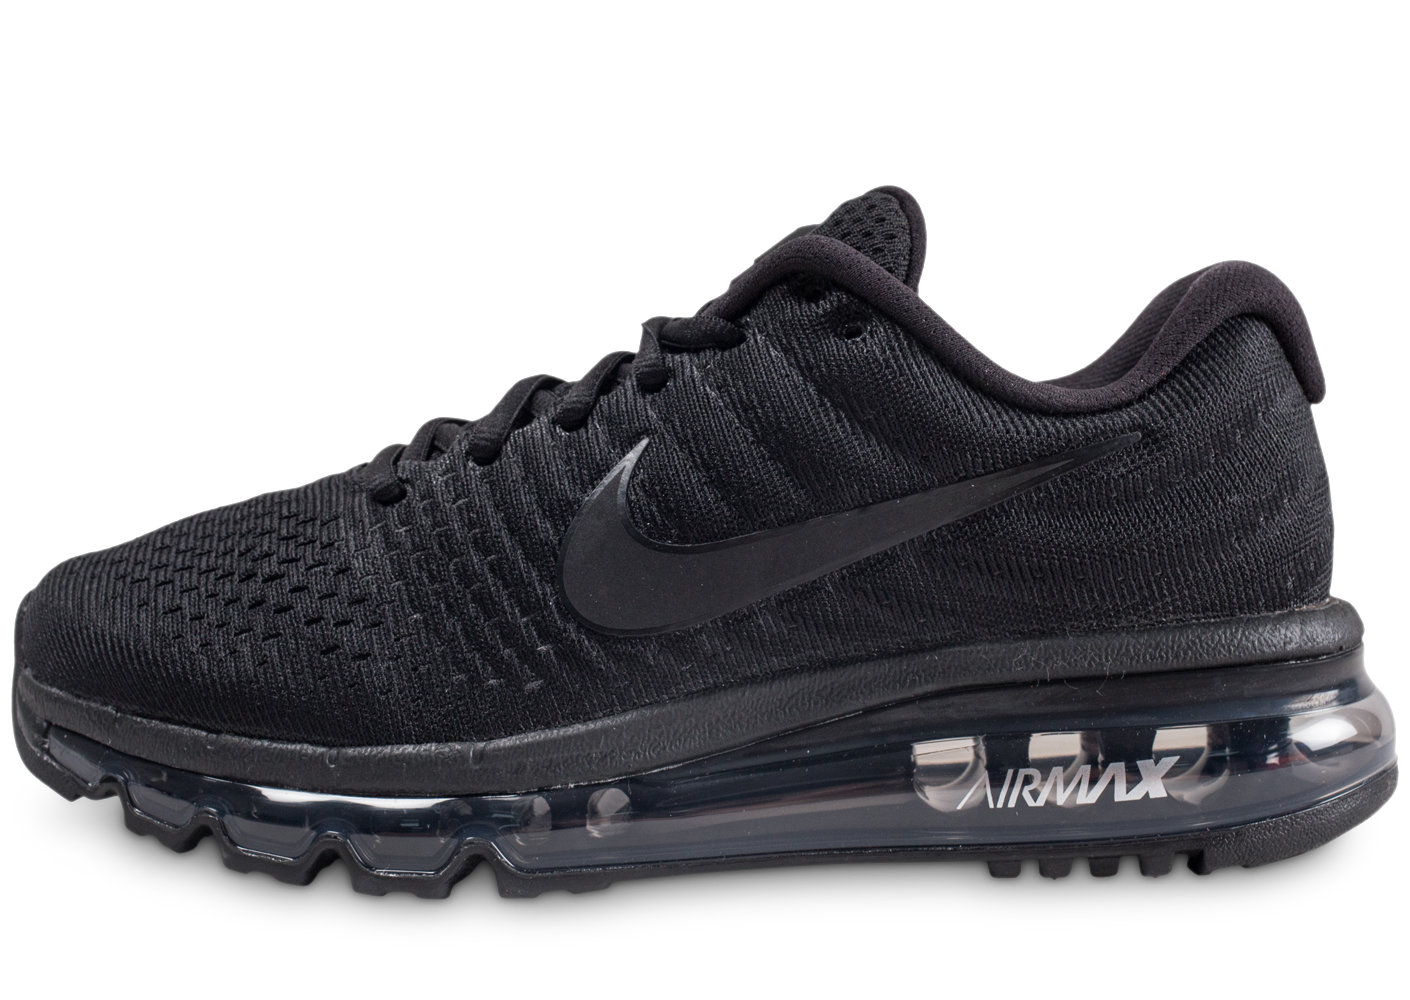 brand new c2f28 ac2cb Nike air max 2017 noire femme baskets